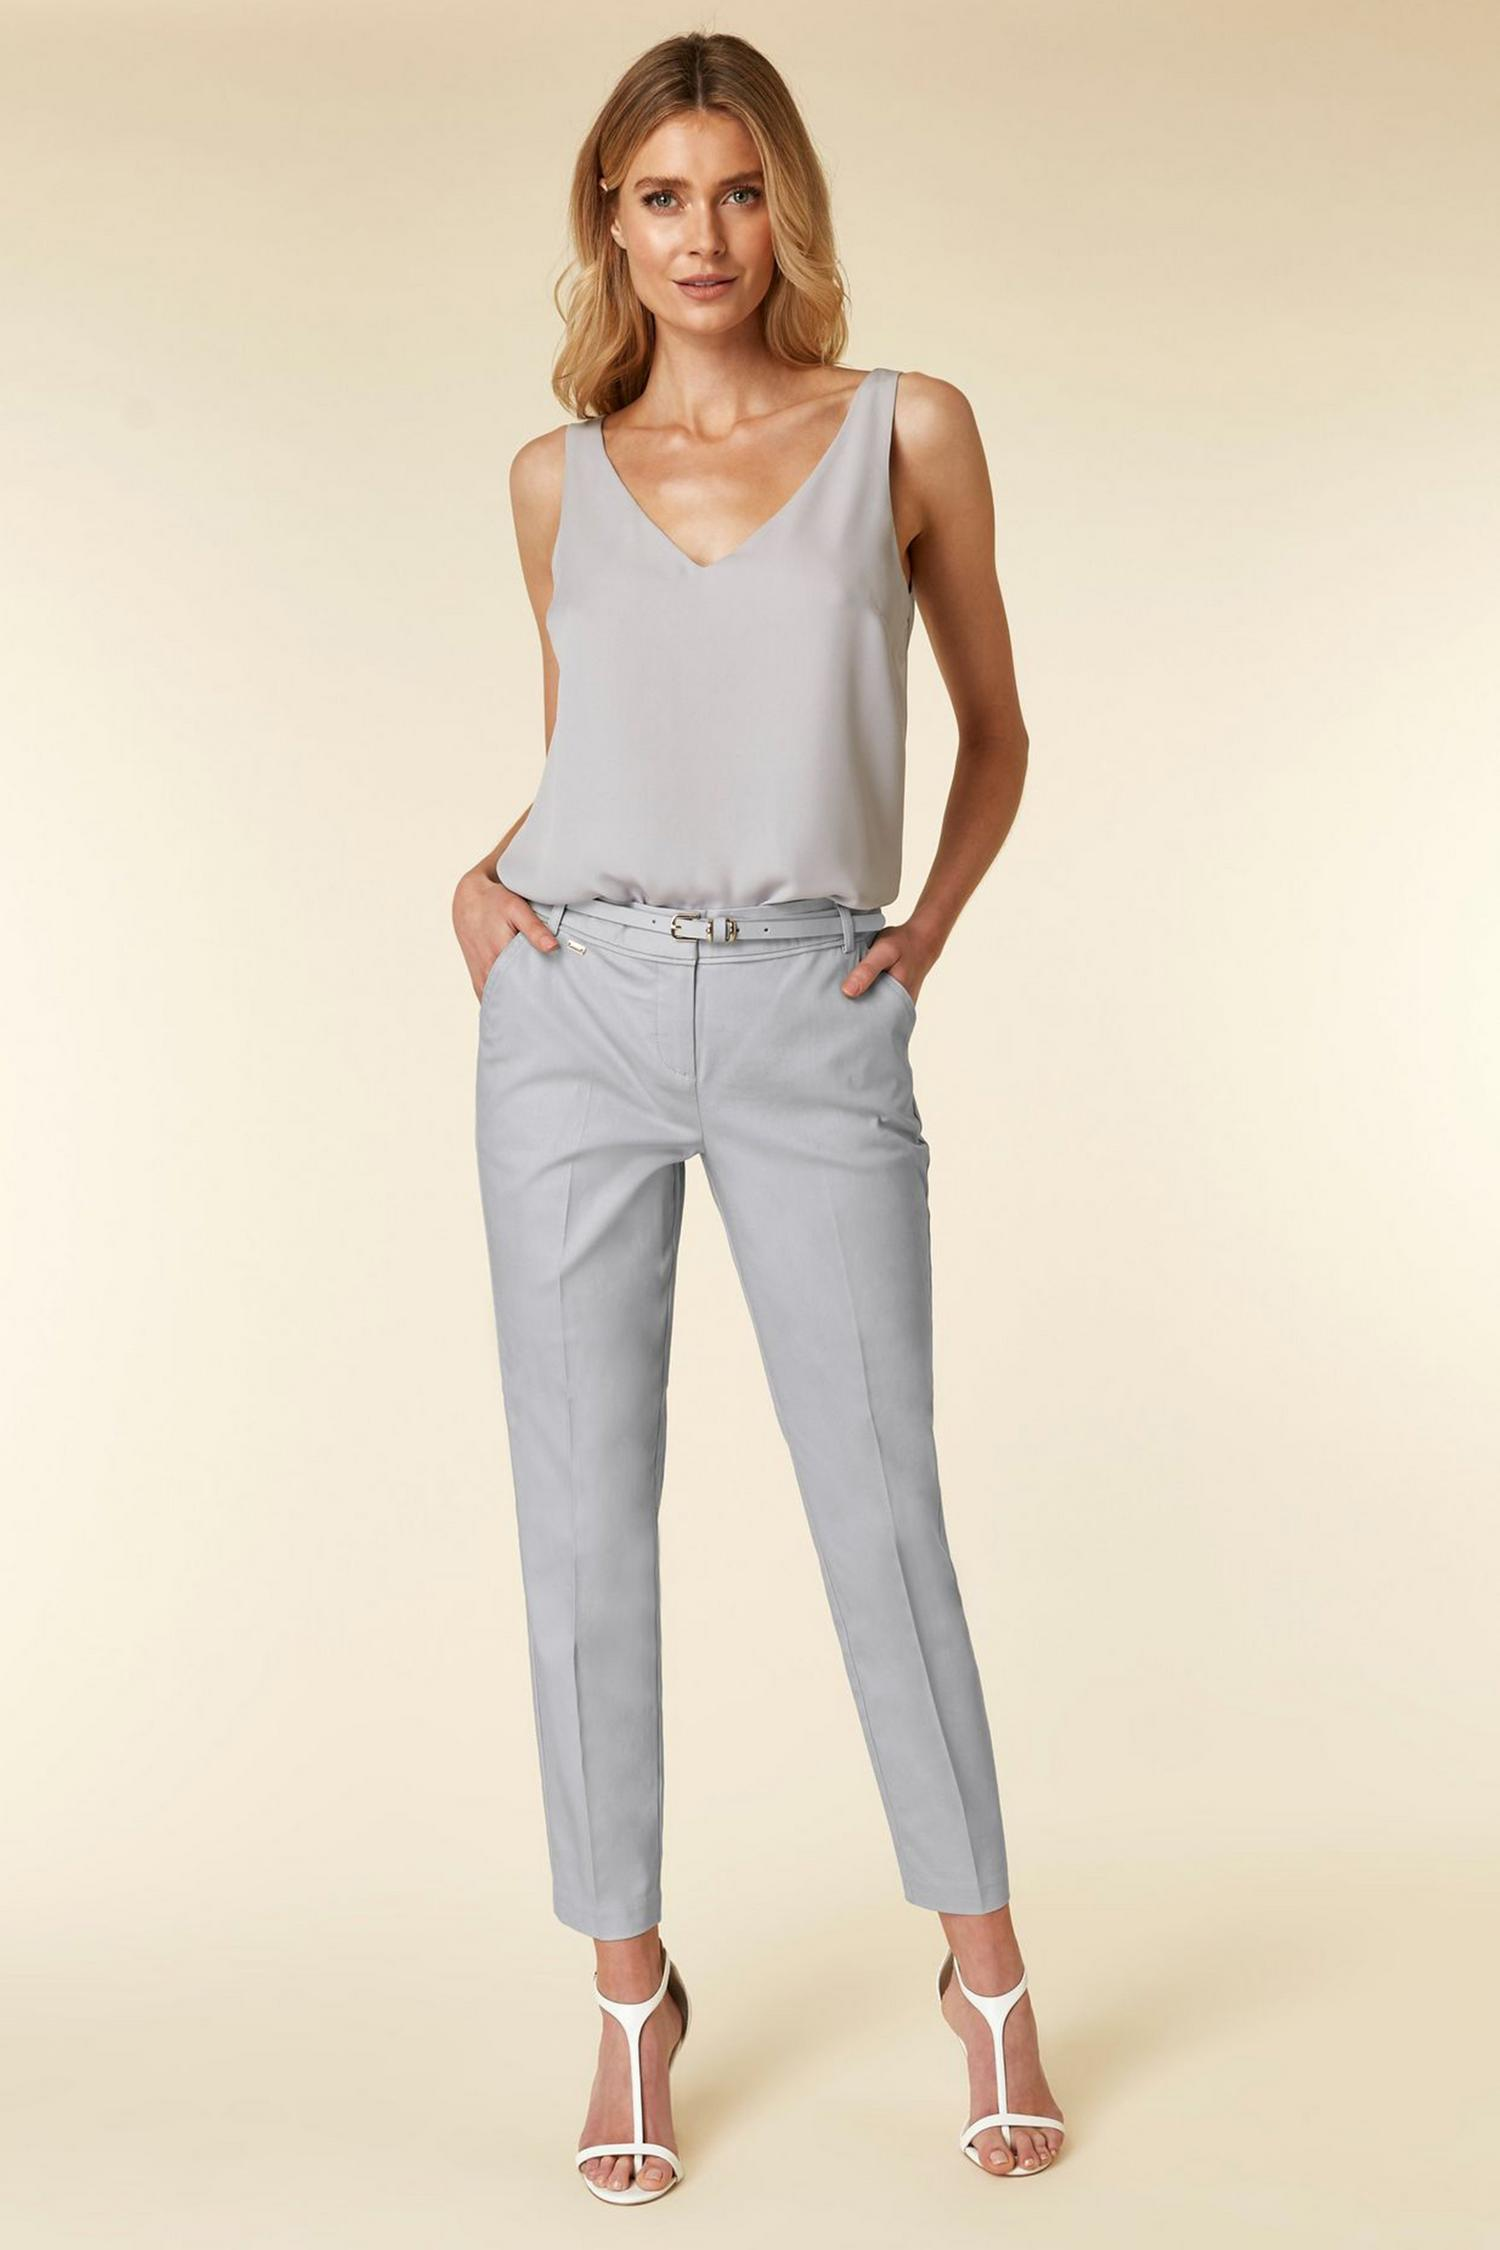 131 Grey Belted Cigarette Trousers image number 1